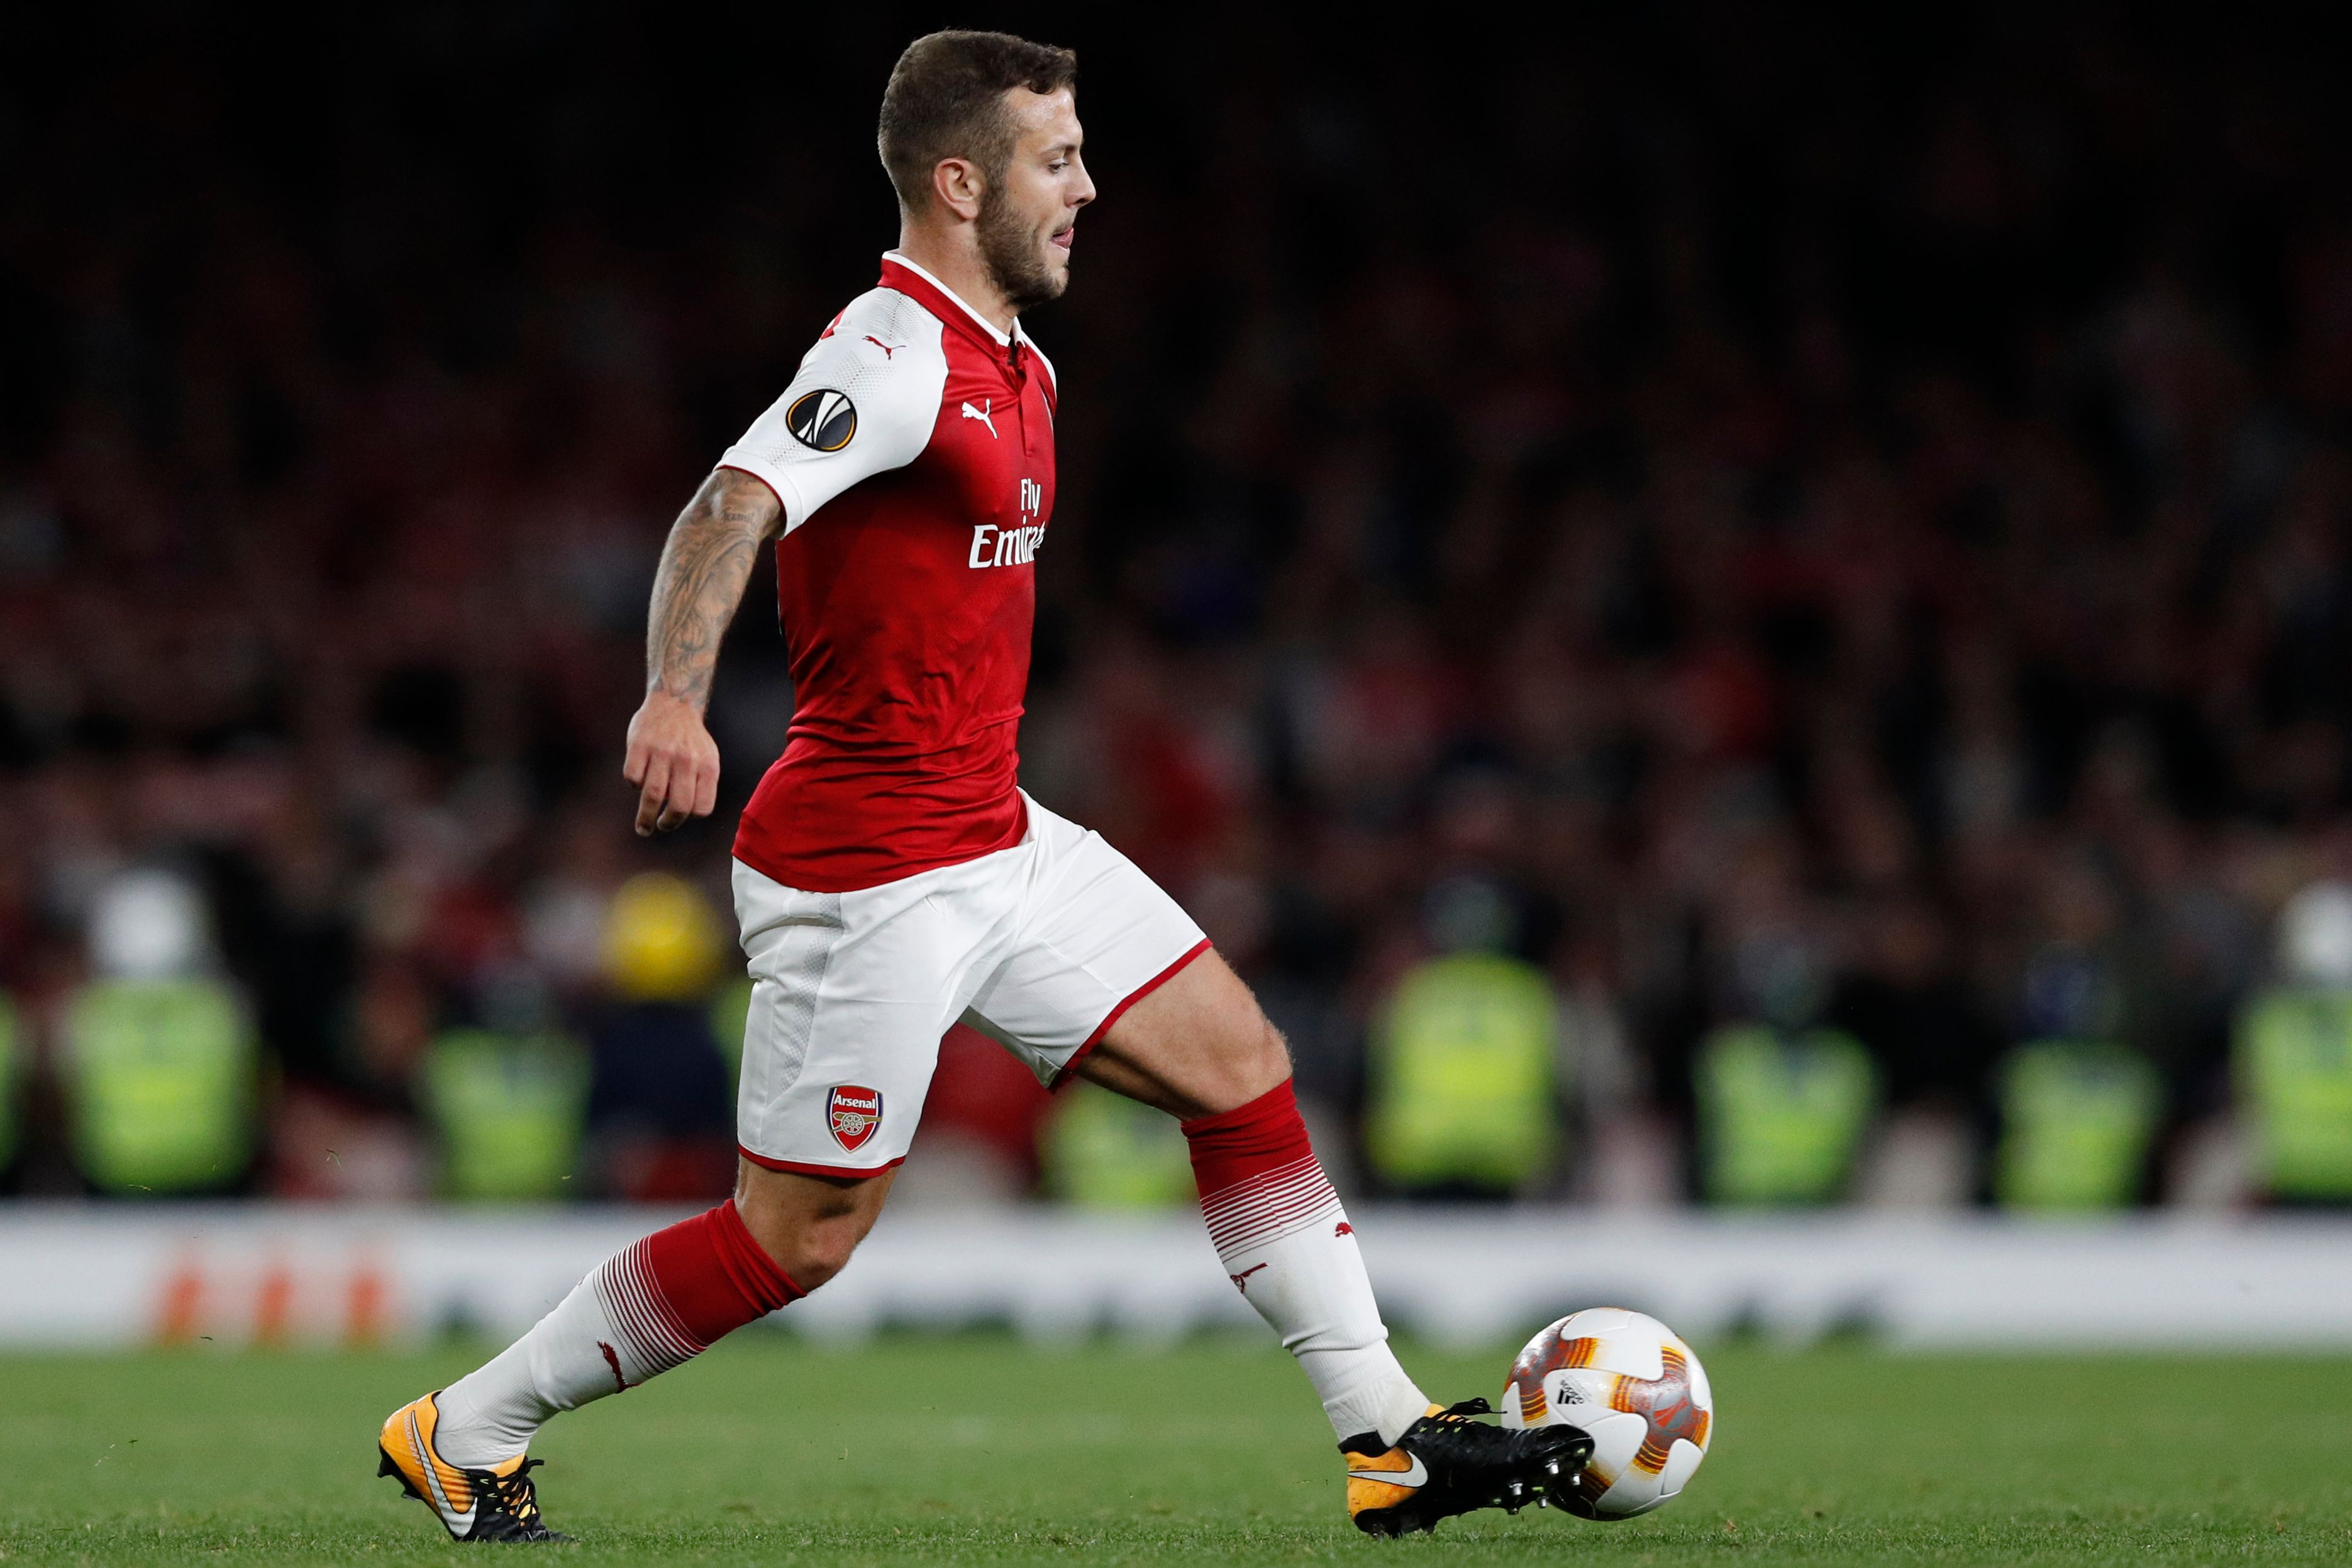 Arsenal's English midfielder Jack Wilshere runs with the ball during the UEFA Europa League Group H football match between Arsenal and FC Cologne at The Emirates Stadium in London on September 14, 2017. / AFP PHOTO / Adrian DENNIS (Photo credit should read ADRIAN DENNIS/AFP/Getty Images)